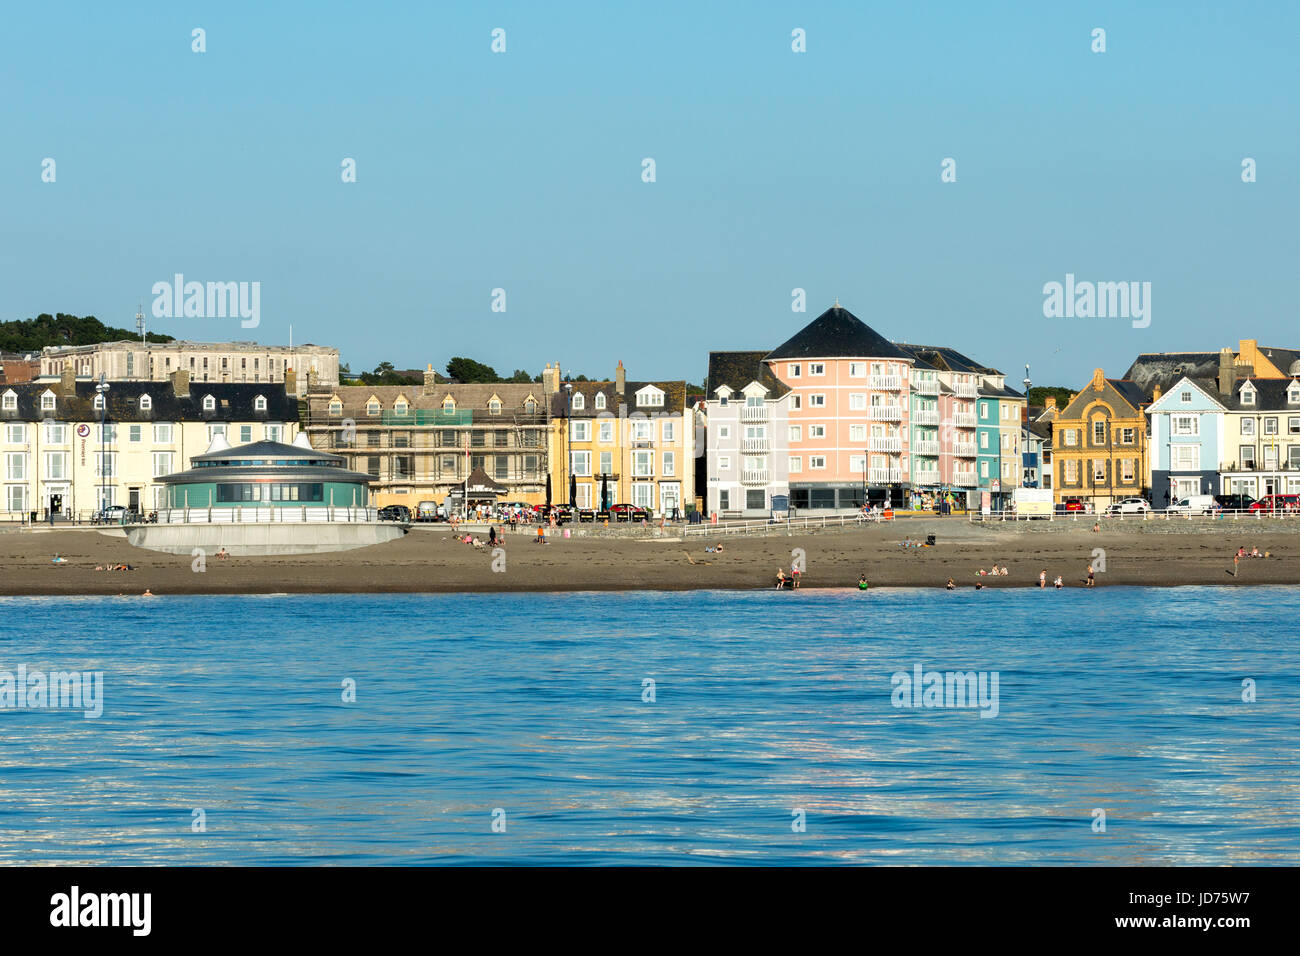 Aberystwyth seafront properties and bandstand, with people on the beach - Stock Image